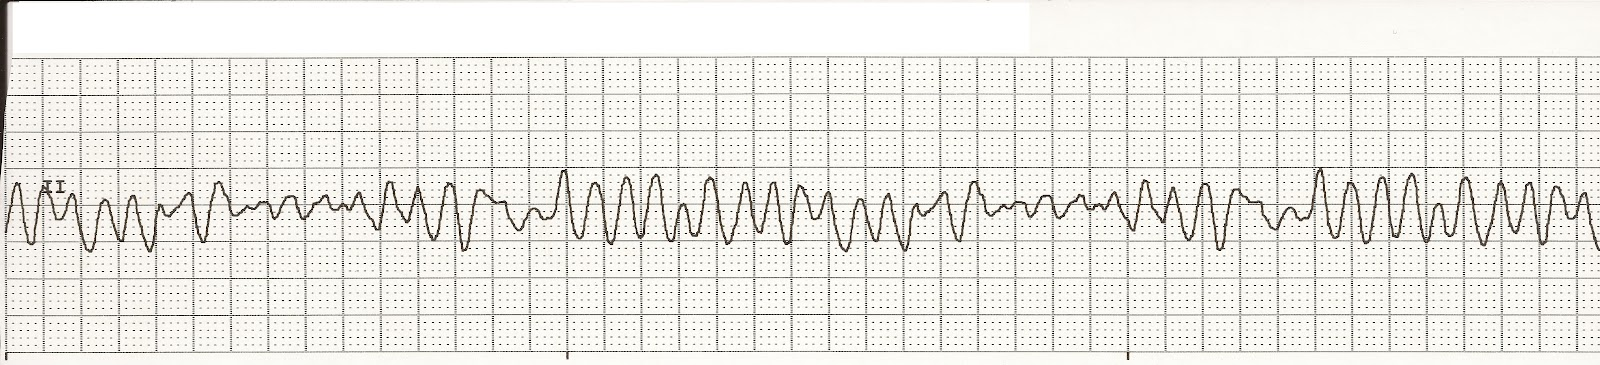 tachycardia definition of tachycardia by medical